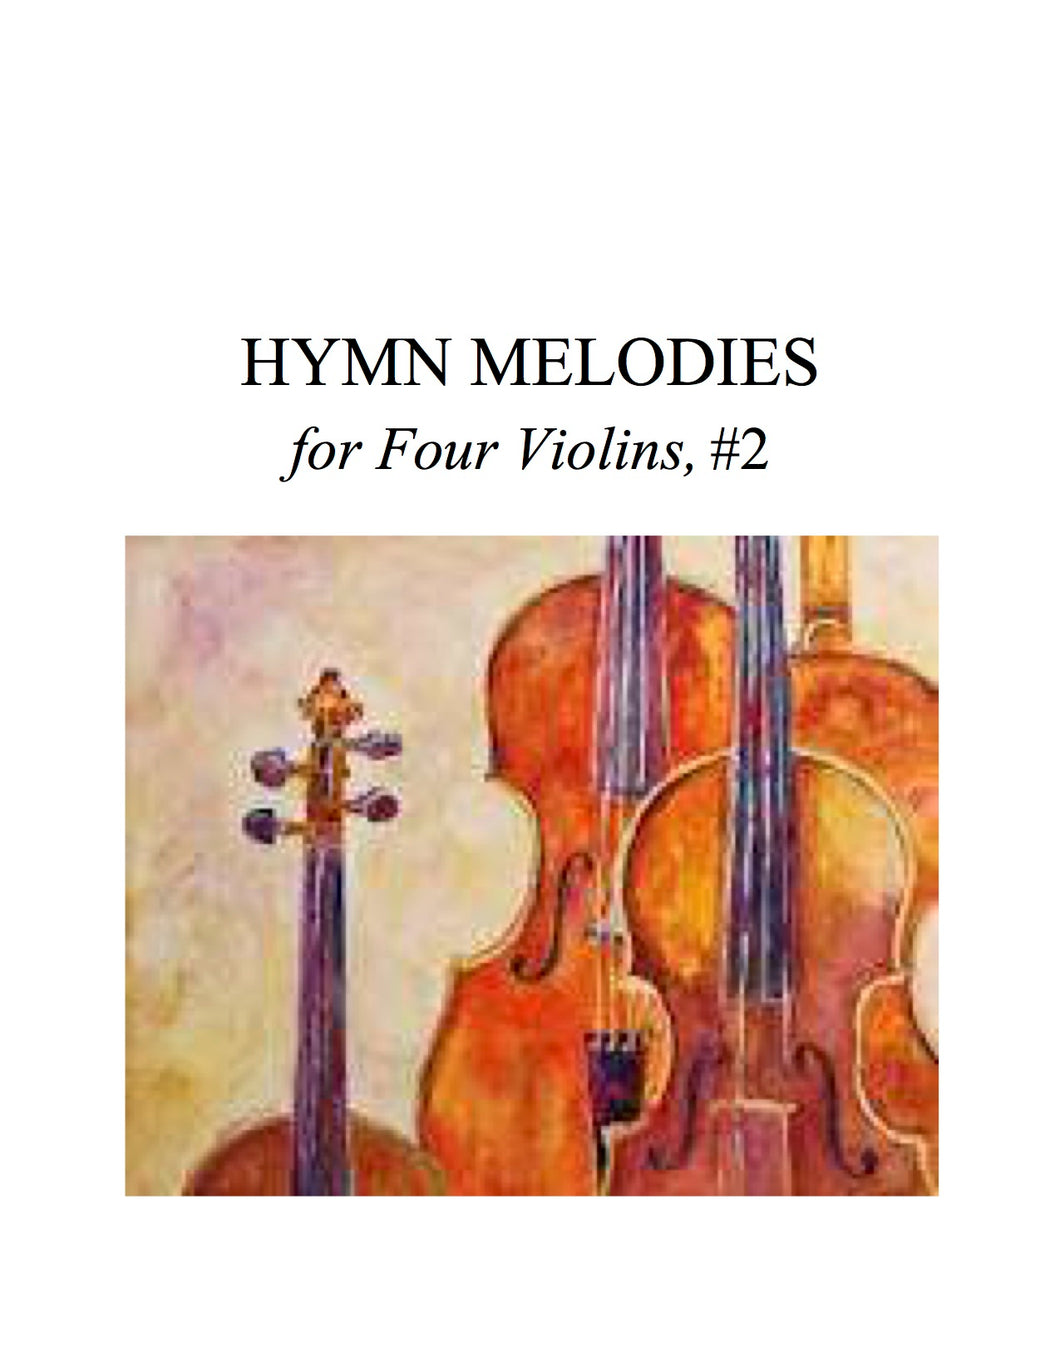 075 Hymn Melodies For Four Violins #2